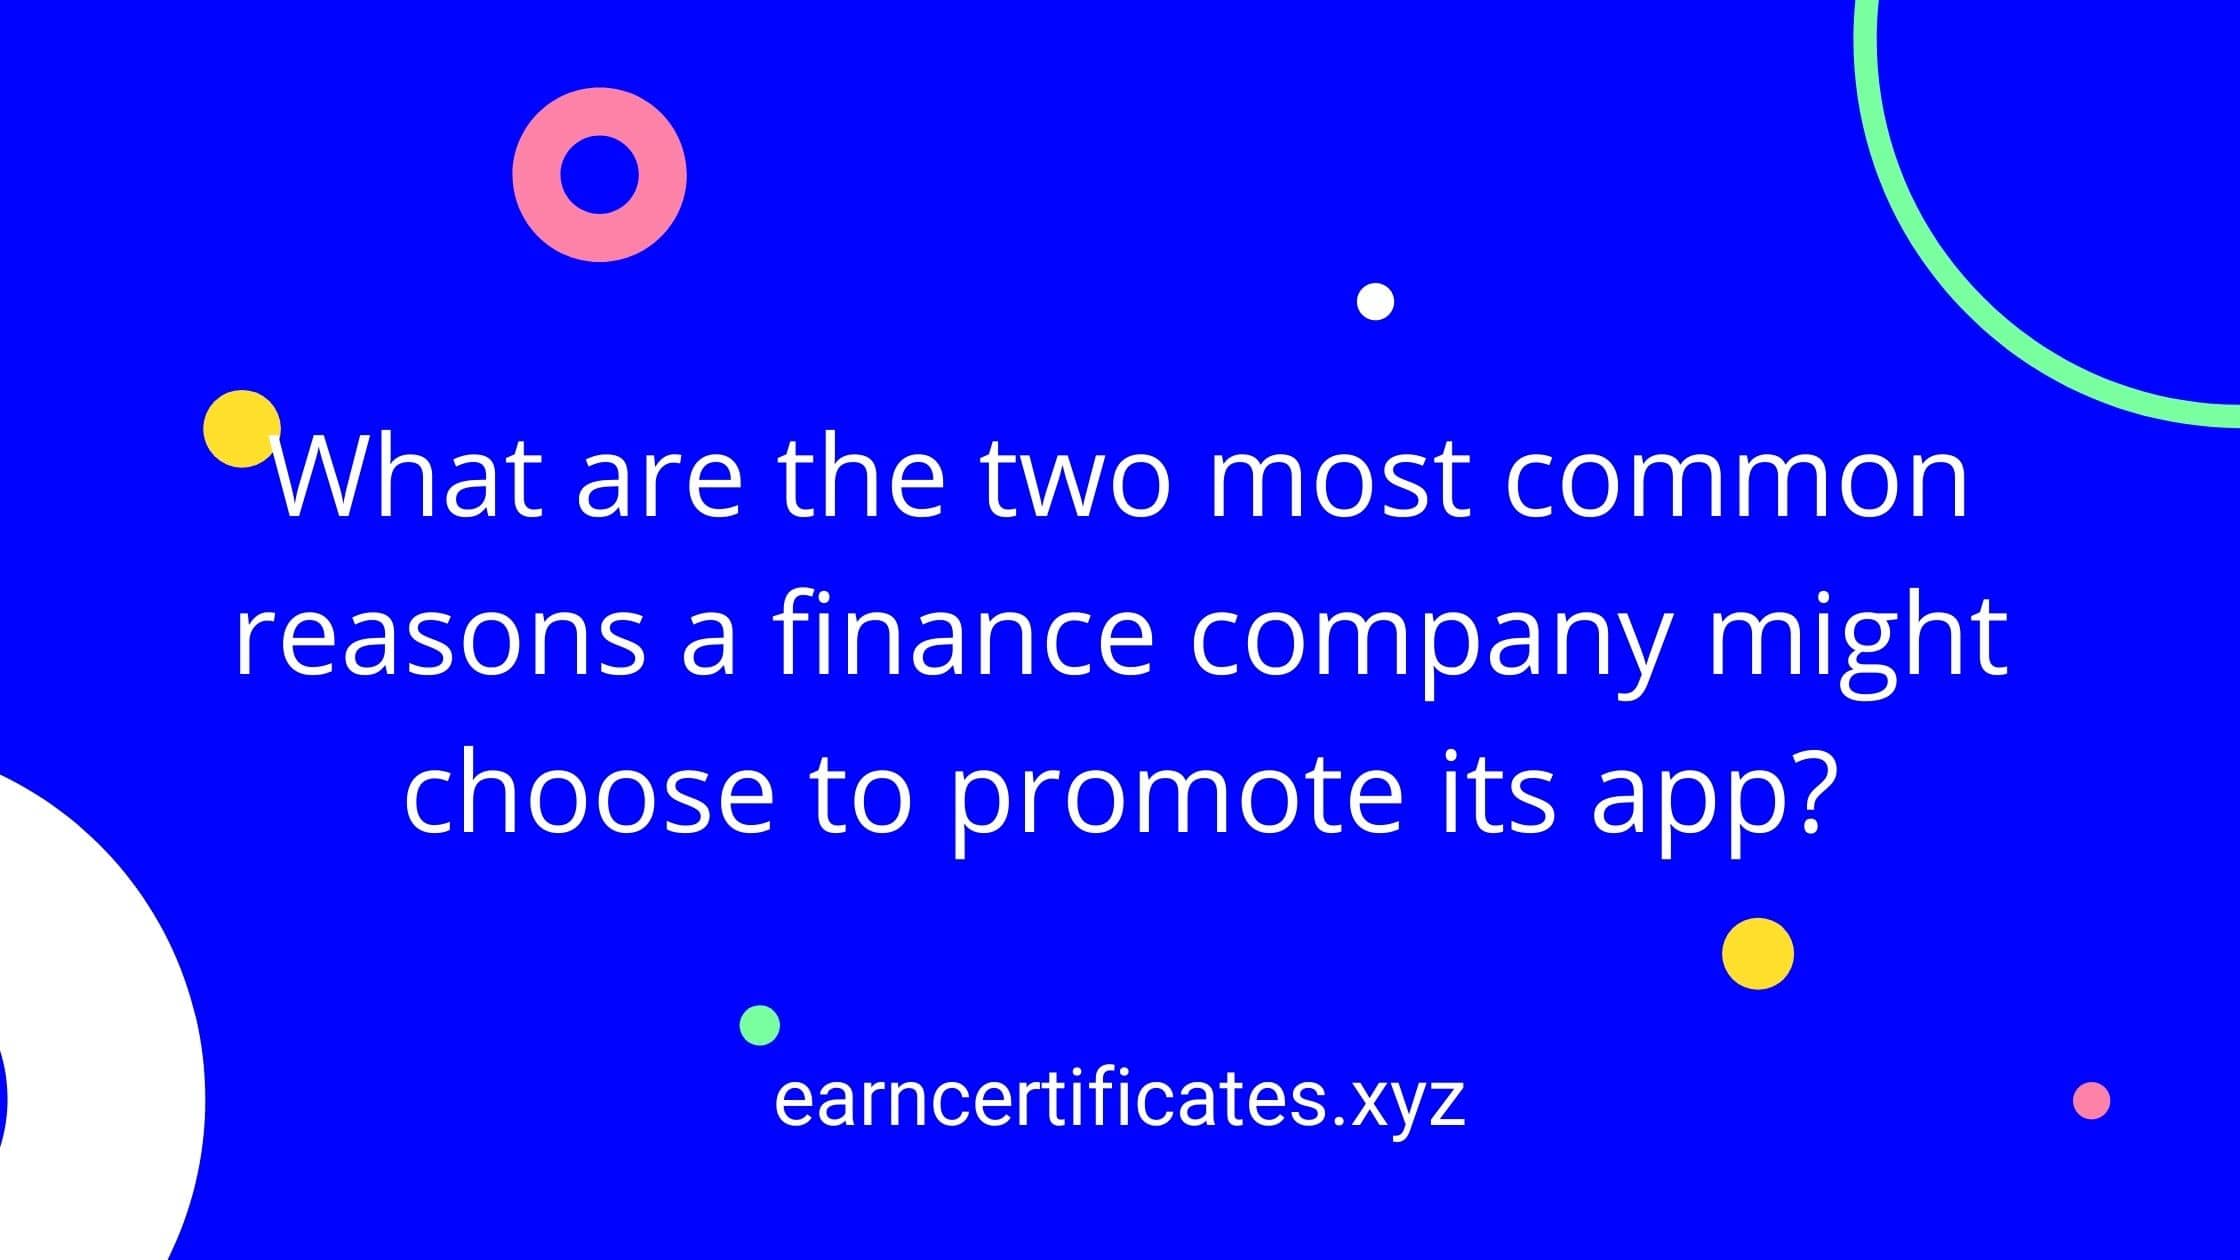 What are the two most common reasons a finance company might choose to promote its app?